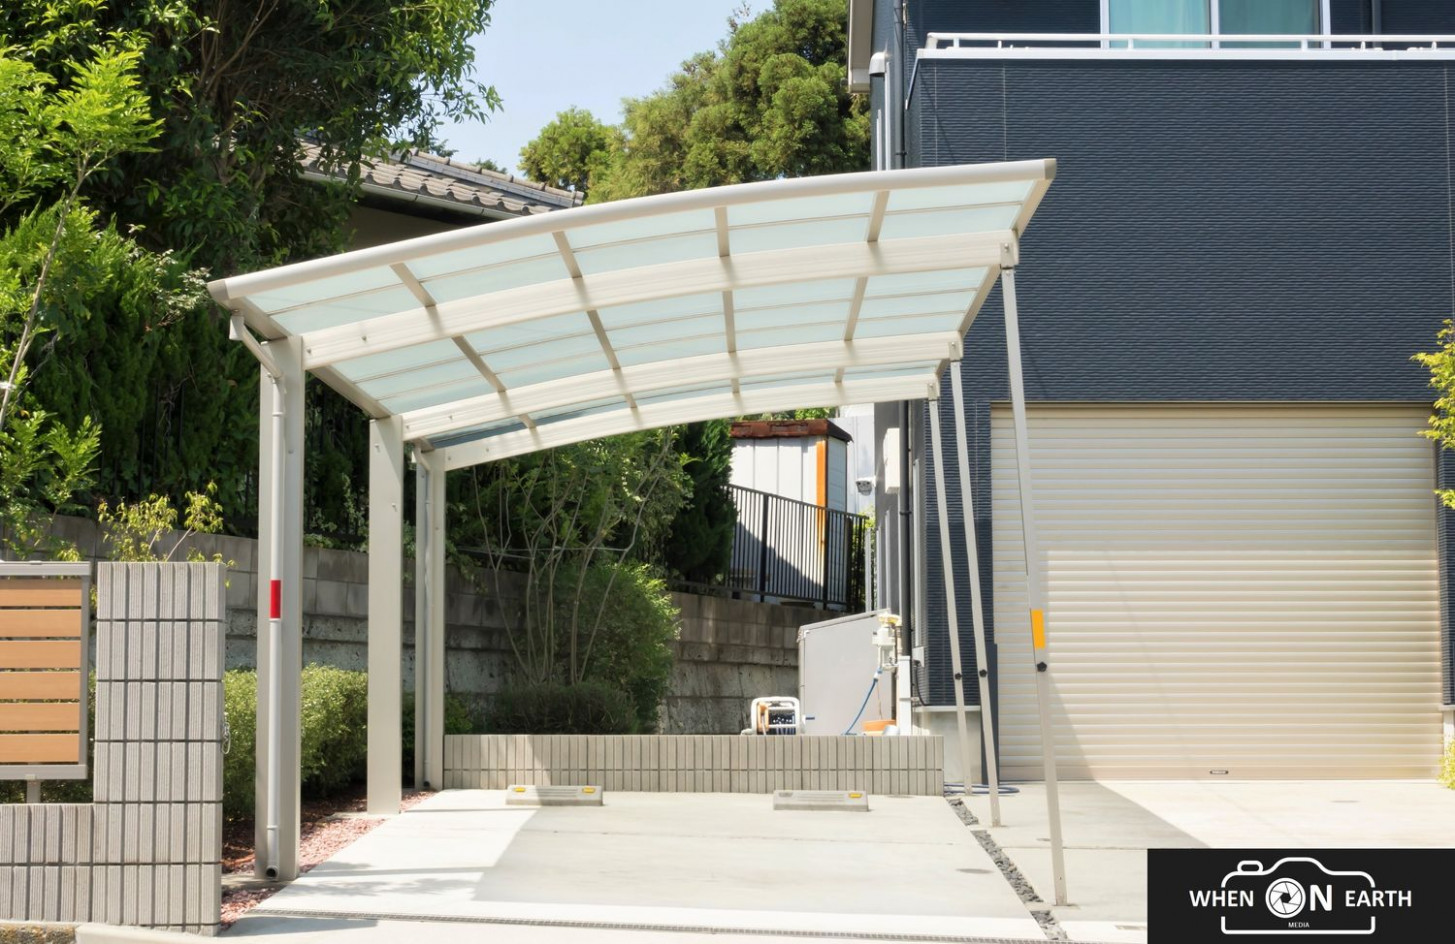 12 Best Portable Garages 12 Why They Are Worth Buying King Canopy Portable Carport.jpg